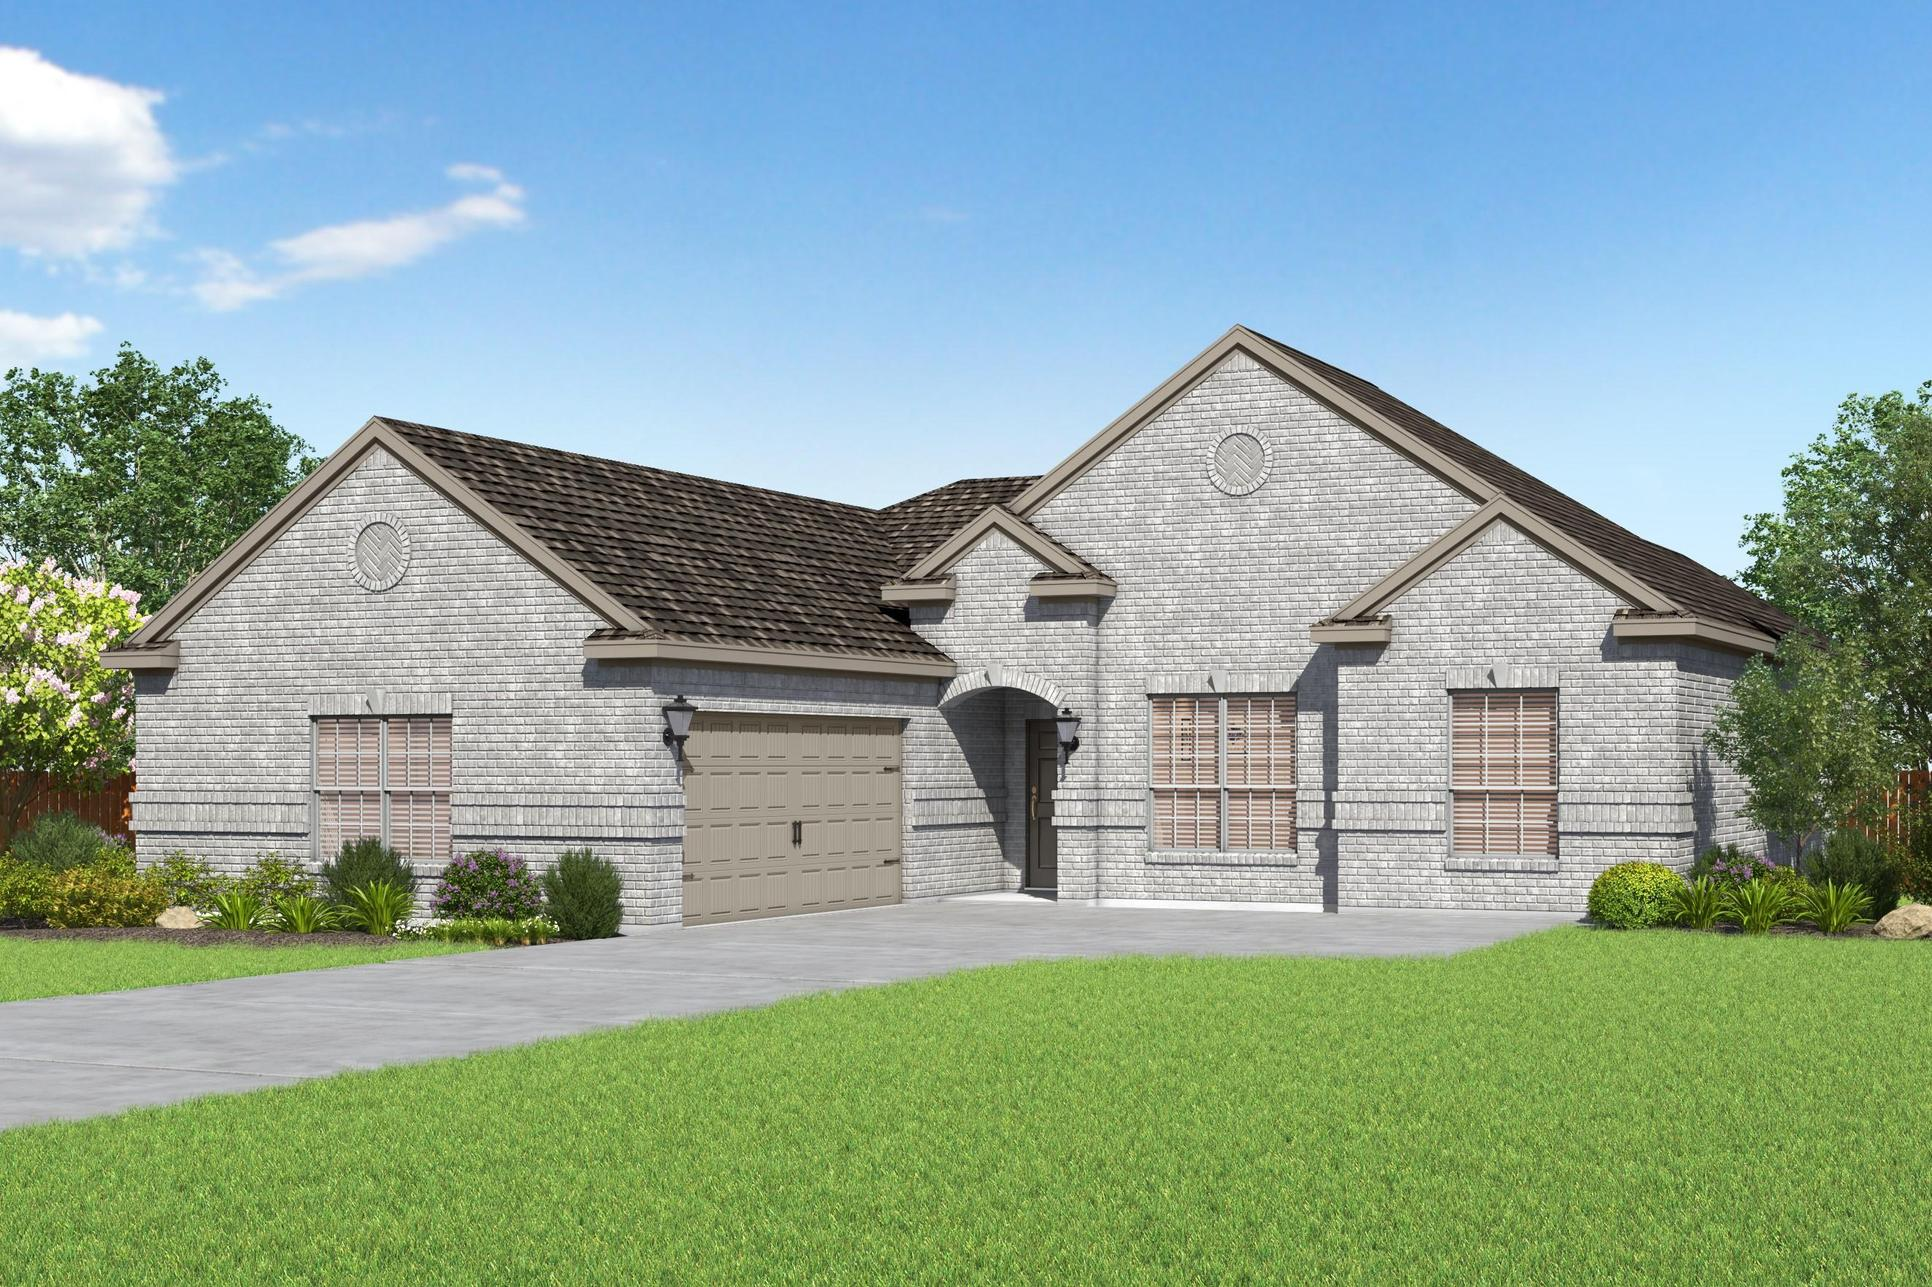 The Ironwood by LGI Homes:The Ironwood plan by LGI Homes is a gorgeous single-story home at Hampton Meadows.